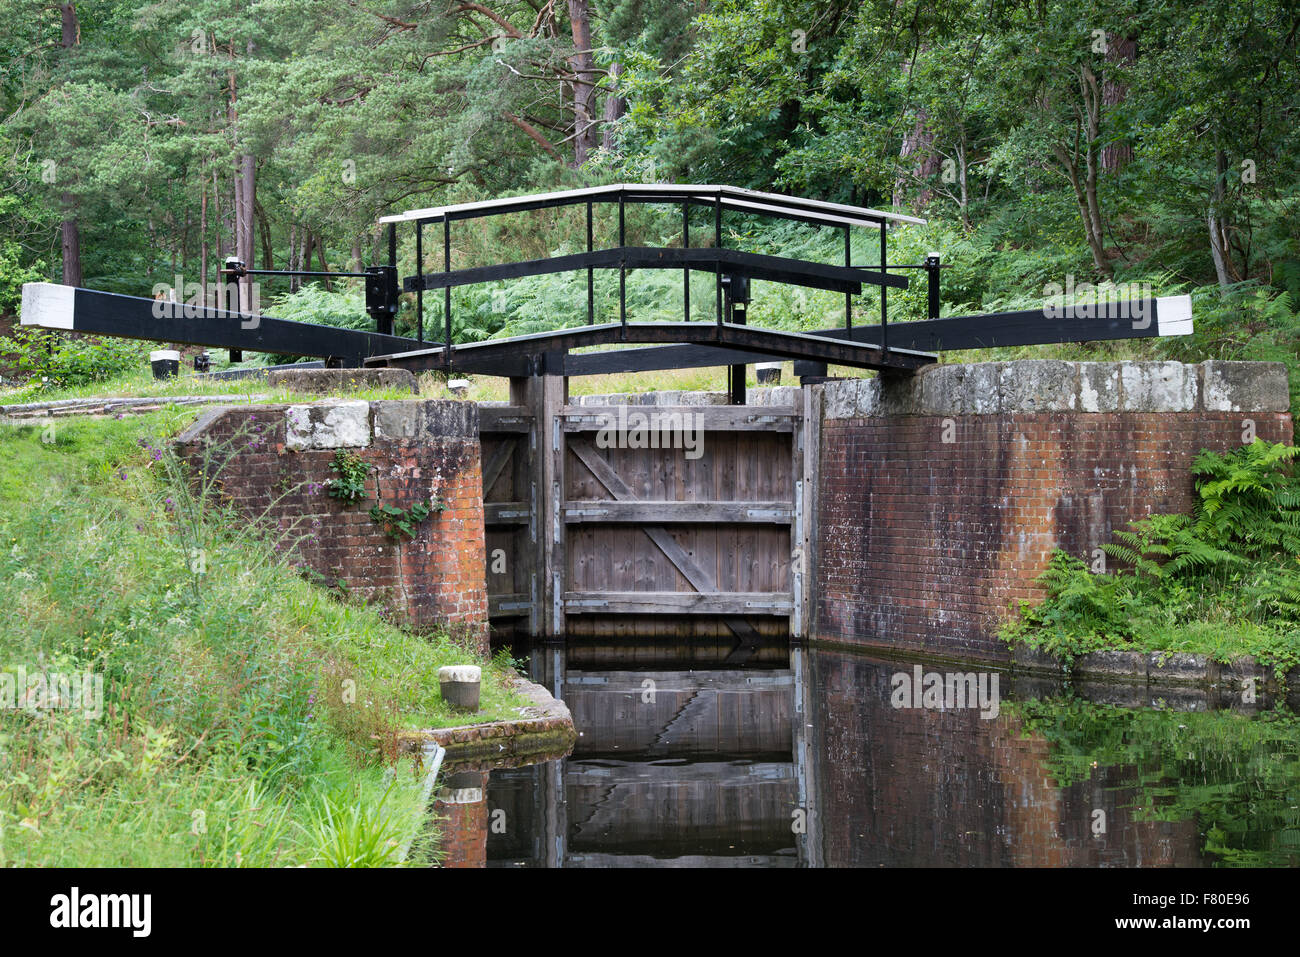 Canal lock gate on the Basingstoke canal near Deepcut , Surrey, England - Stock Image